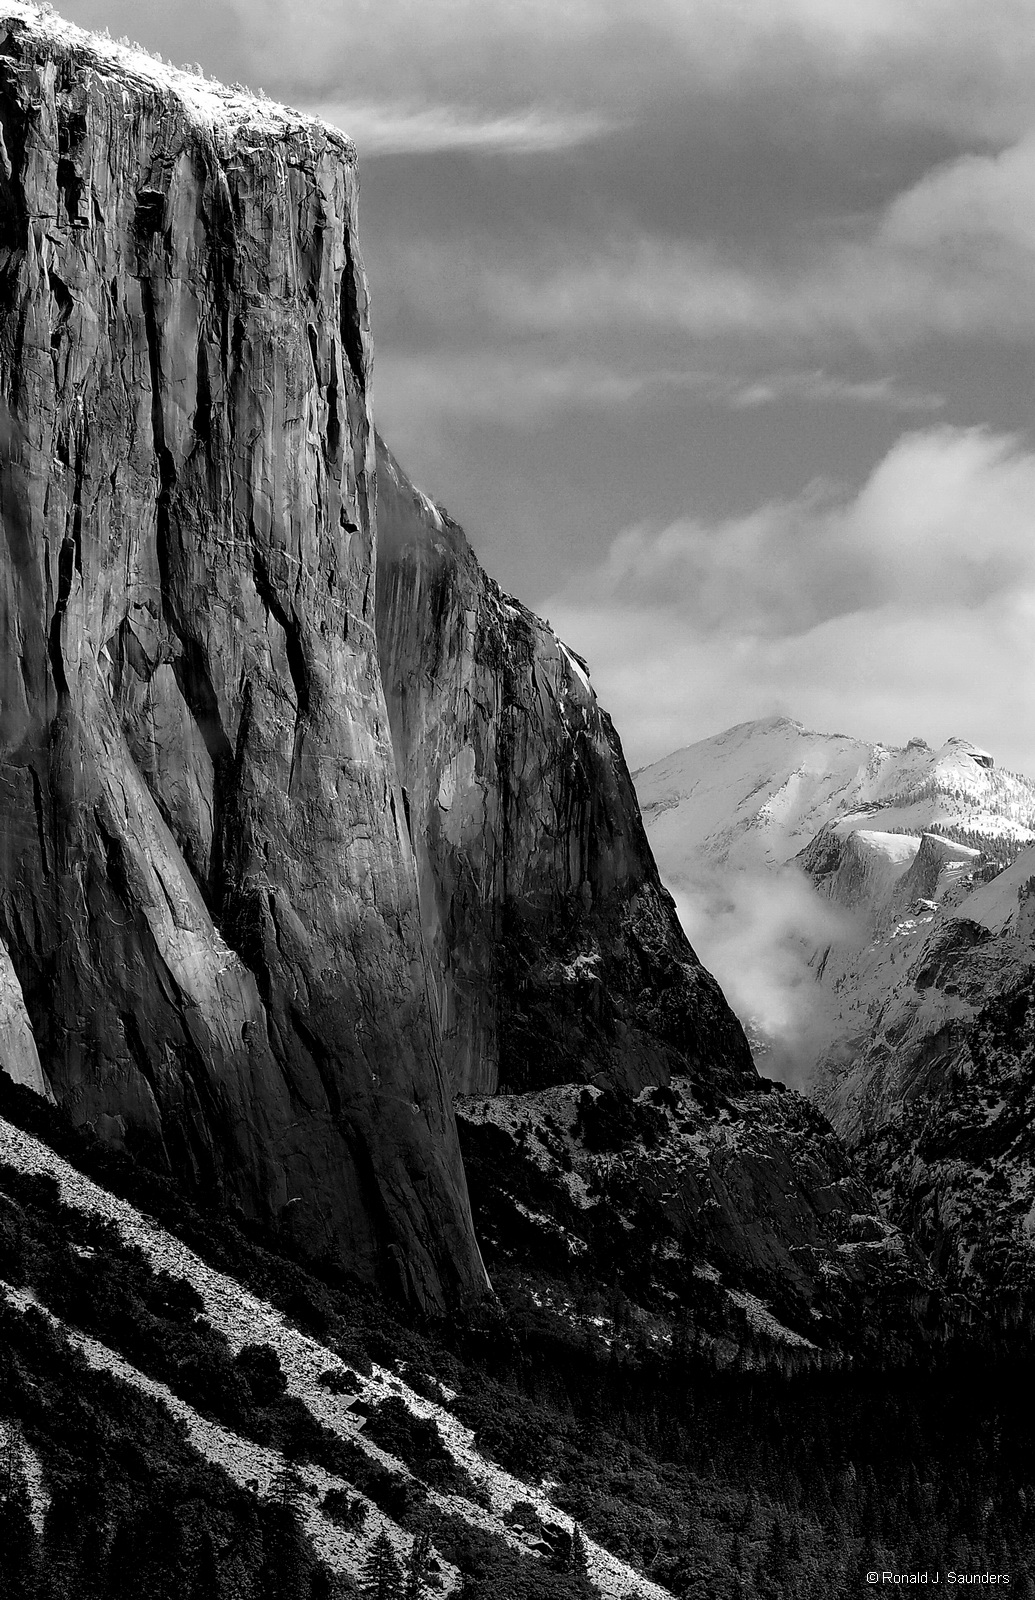 El Capitan is a 3,000-foot vertical rock formation in Yosemite National Park, located on the north side of Yosemite Valley, near...